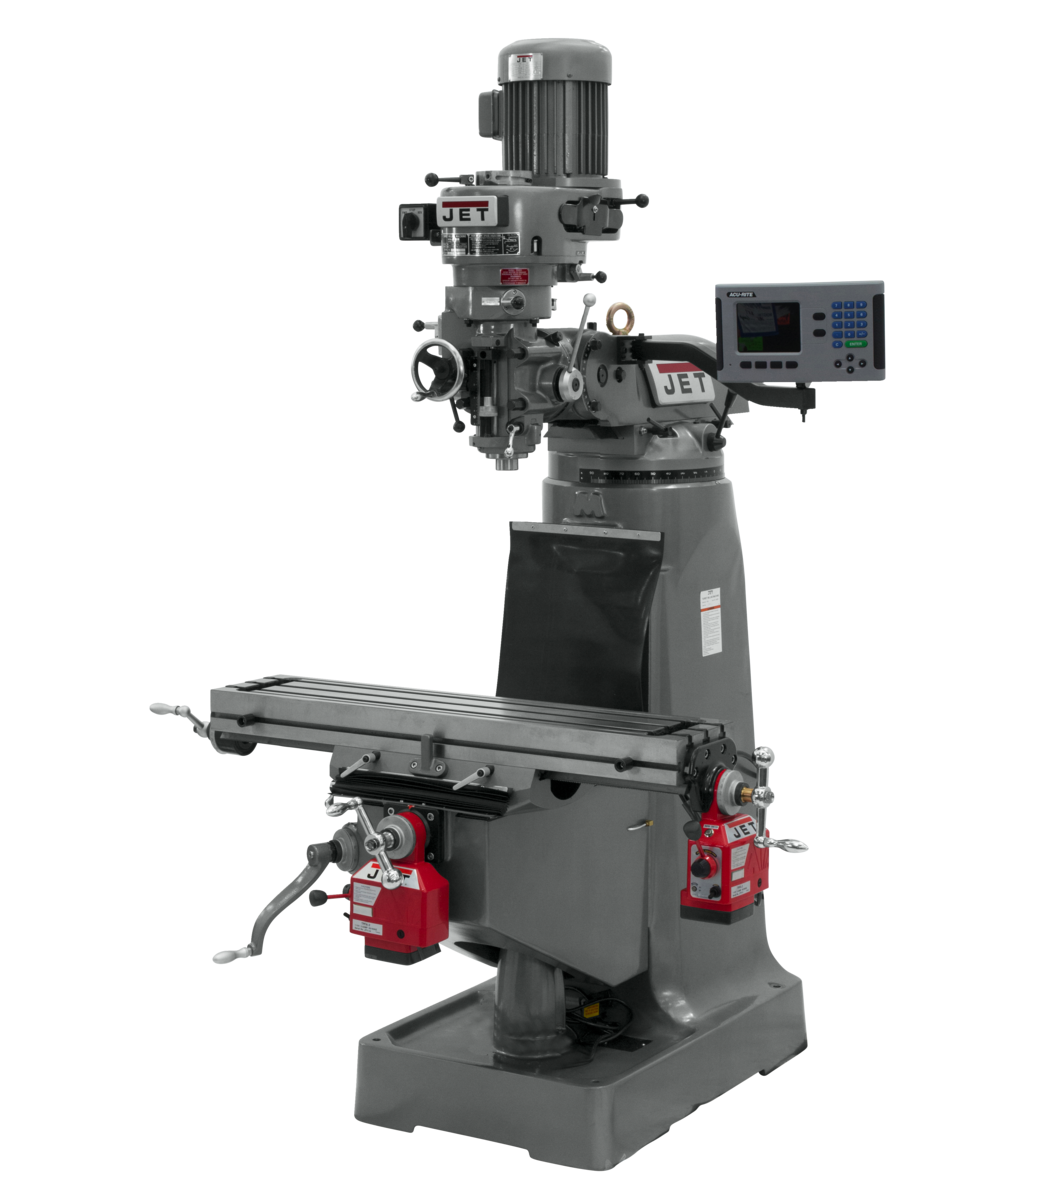 JTM-1 Mill With ACU-RITE 203 DRO ,  X and Y-Axis Powerfeeds